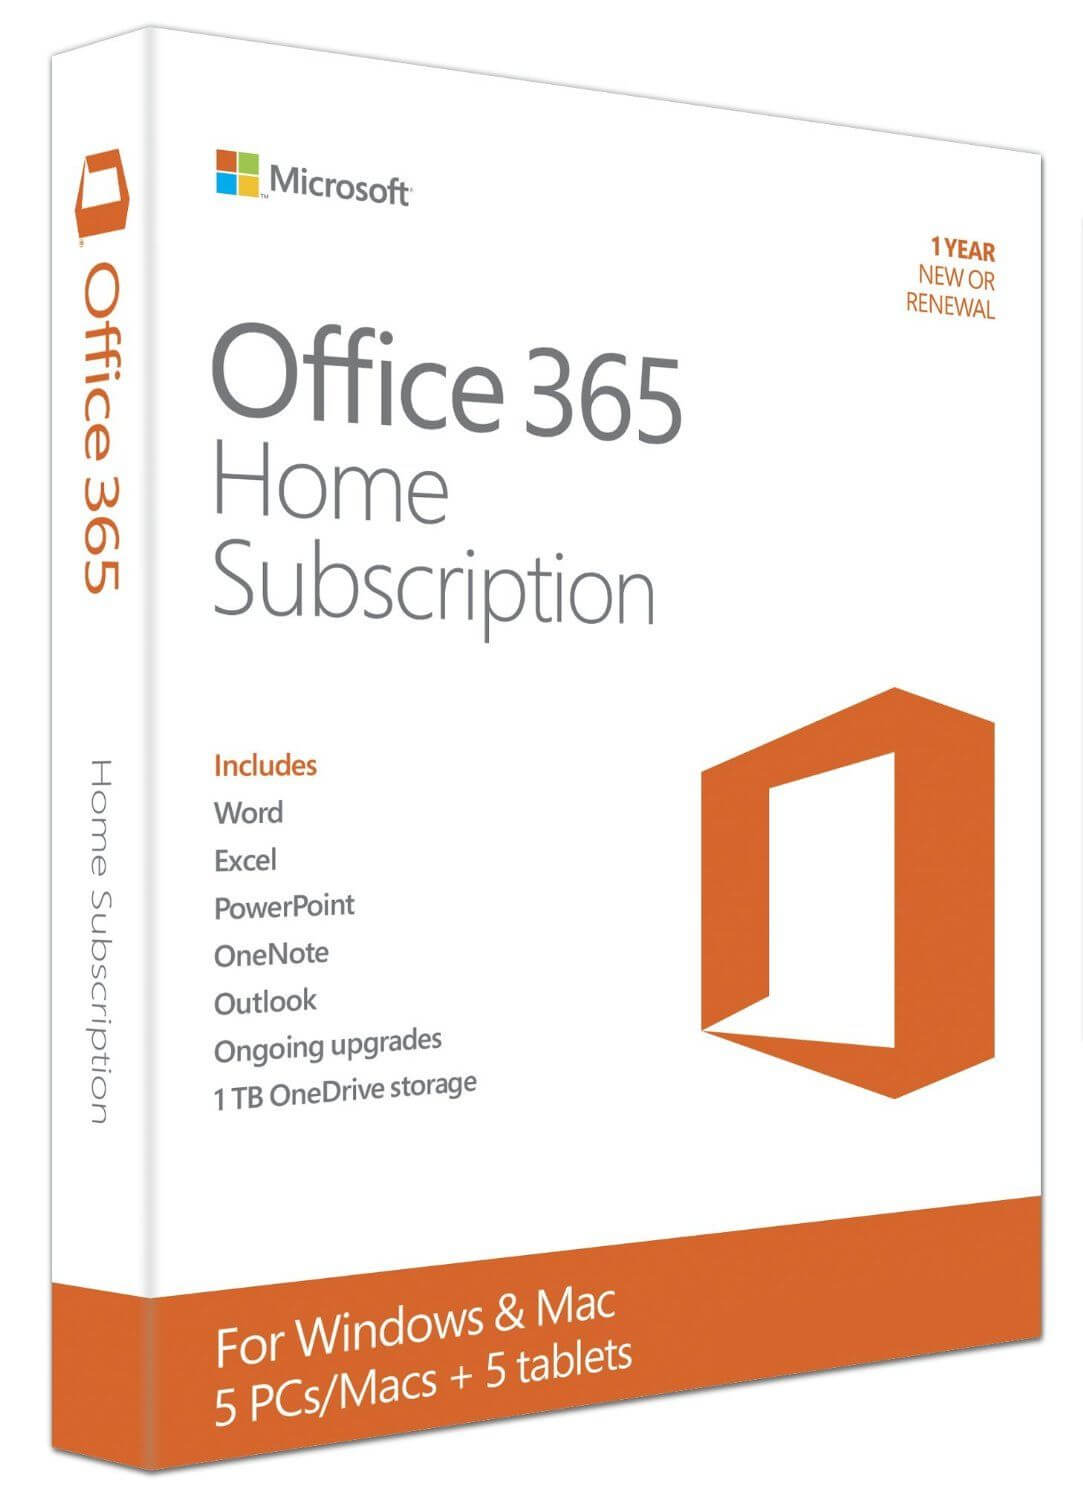 Pick Up Office 365 Home Edition on Amazon on Sale at $76 ...